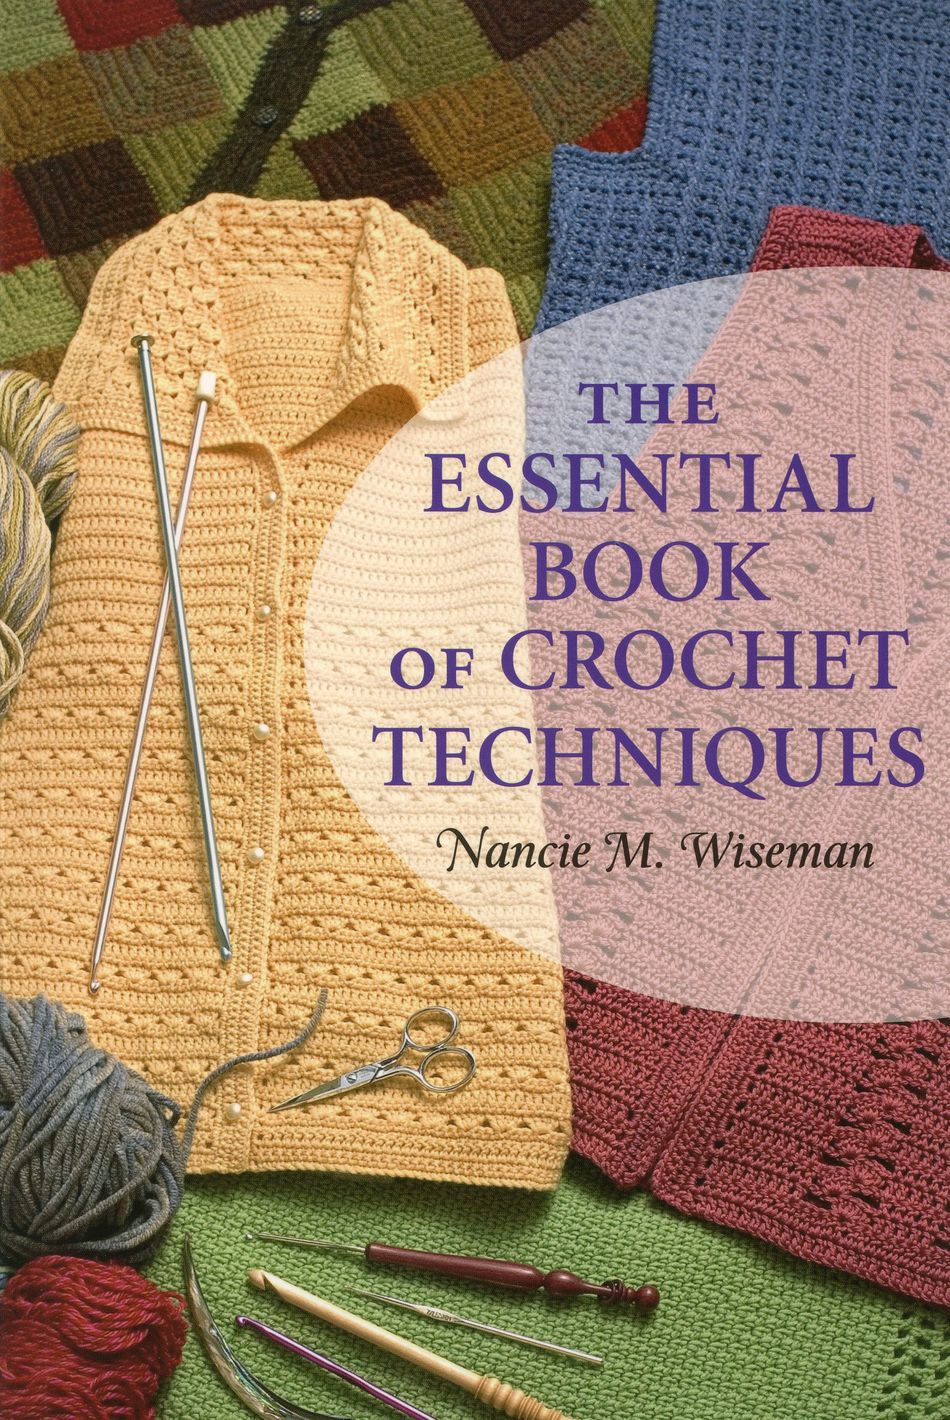 Crochet Books The Essential Book of Crochet Techniques